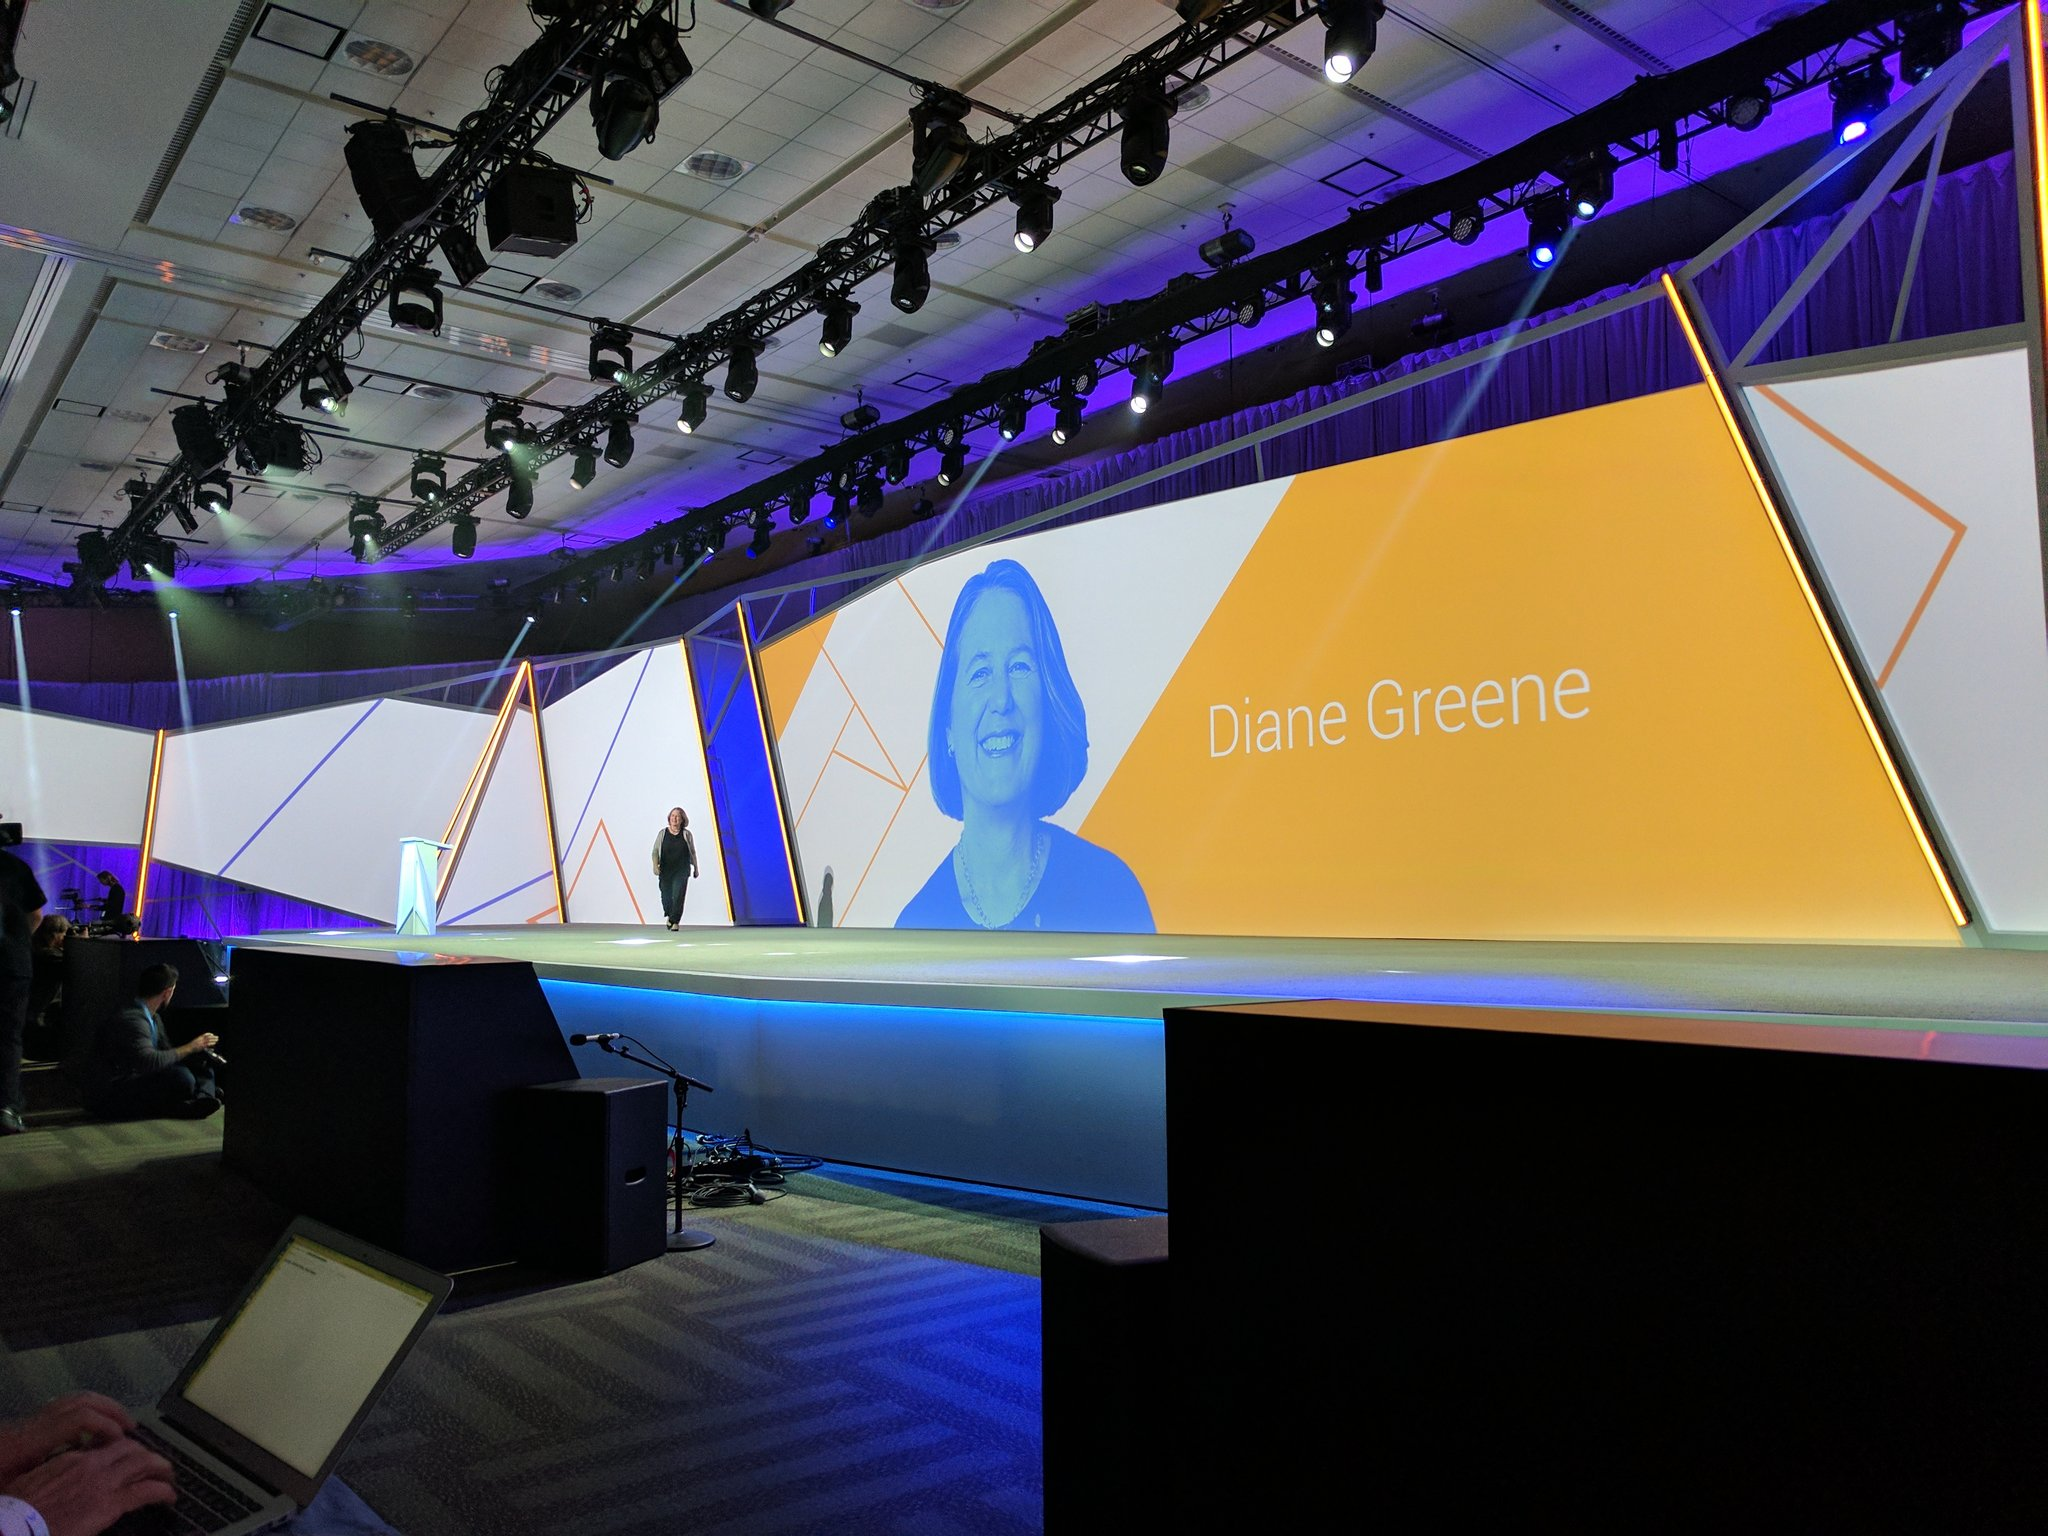 And we are off with Diane Greene #GoogleNext17 https://t.co/qyg3r12eI3